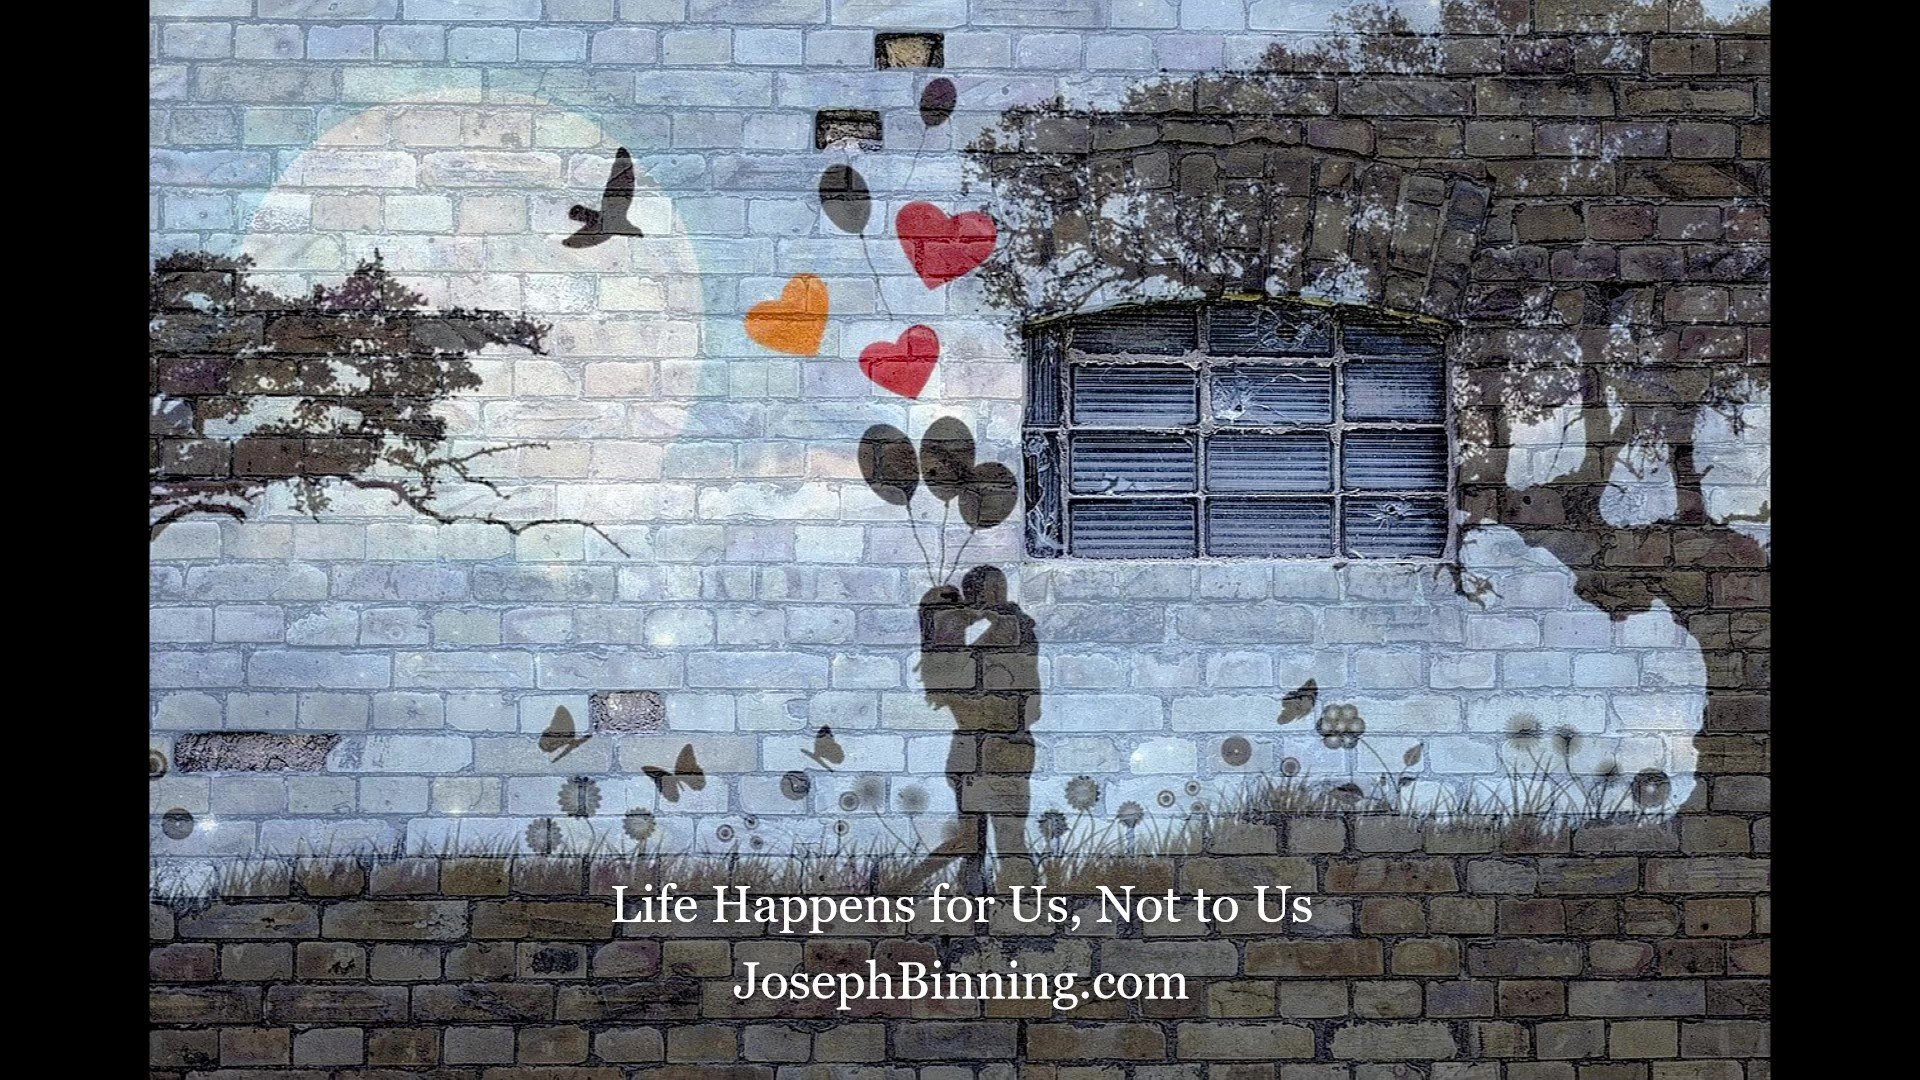 Life Happens for Us, Not to Us